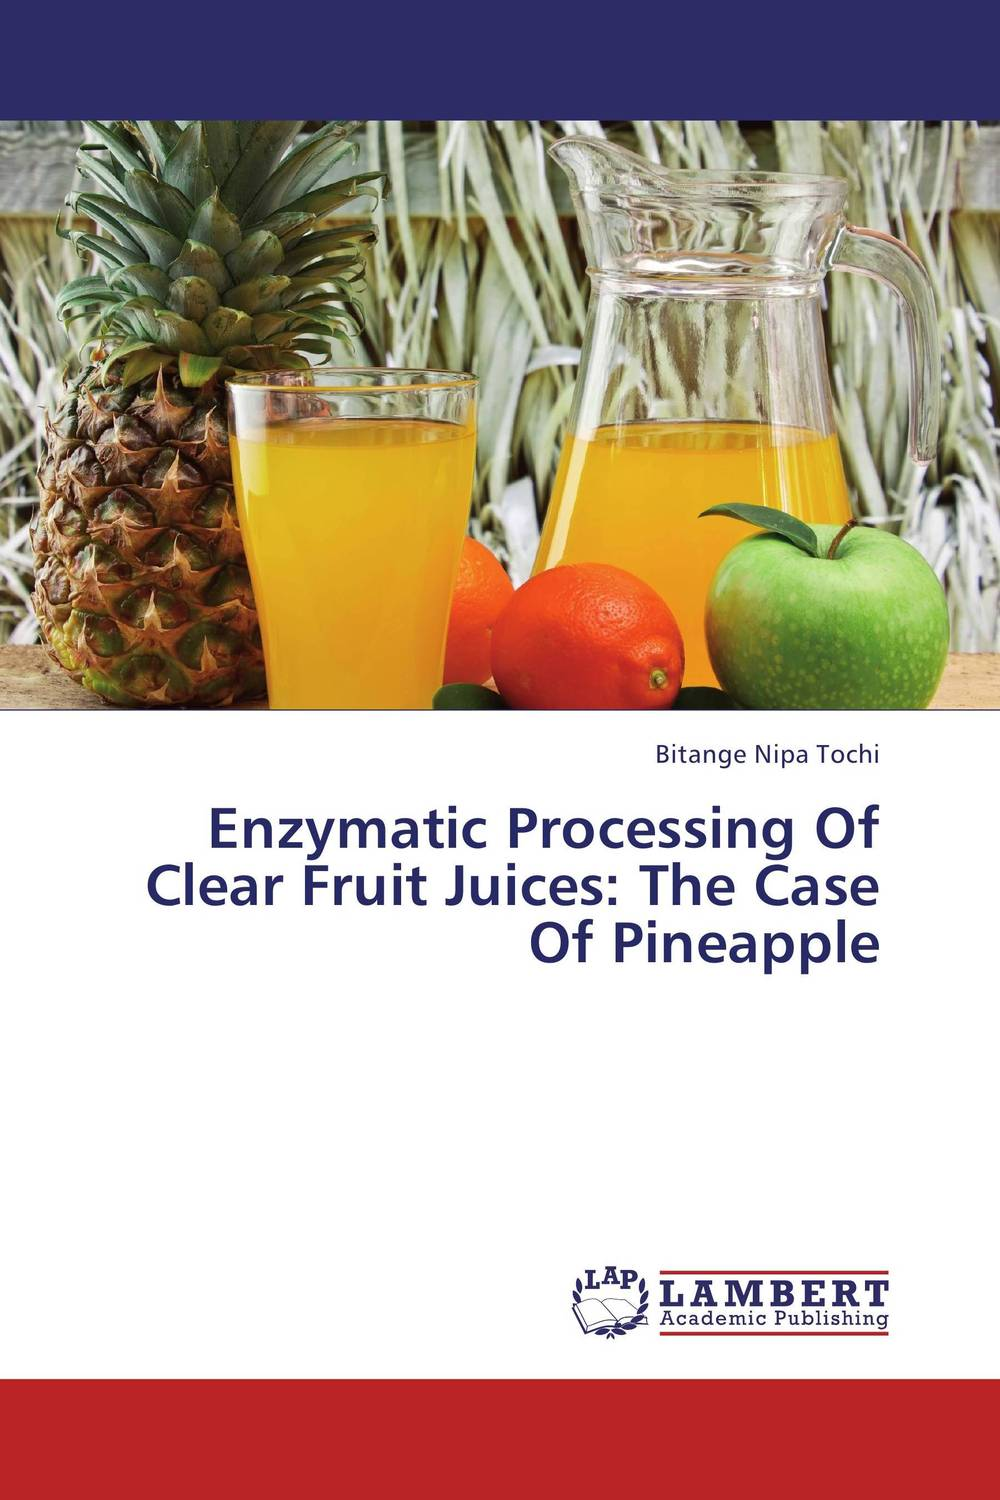 Enzymatic Processing Of Clear Fruit Juices: The Case Of Pineapple quality control and safety of fruit juices nectars and dairy products